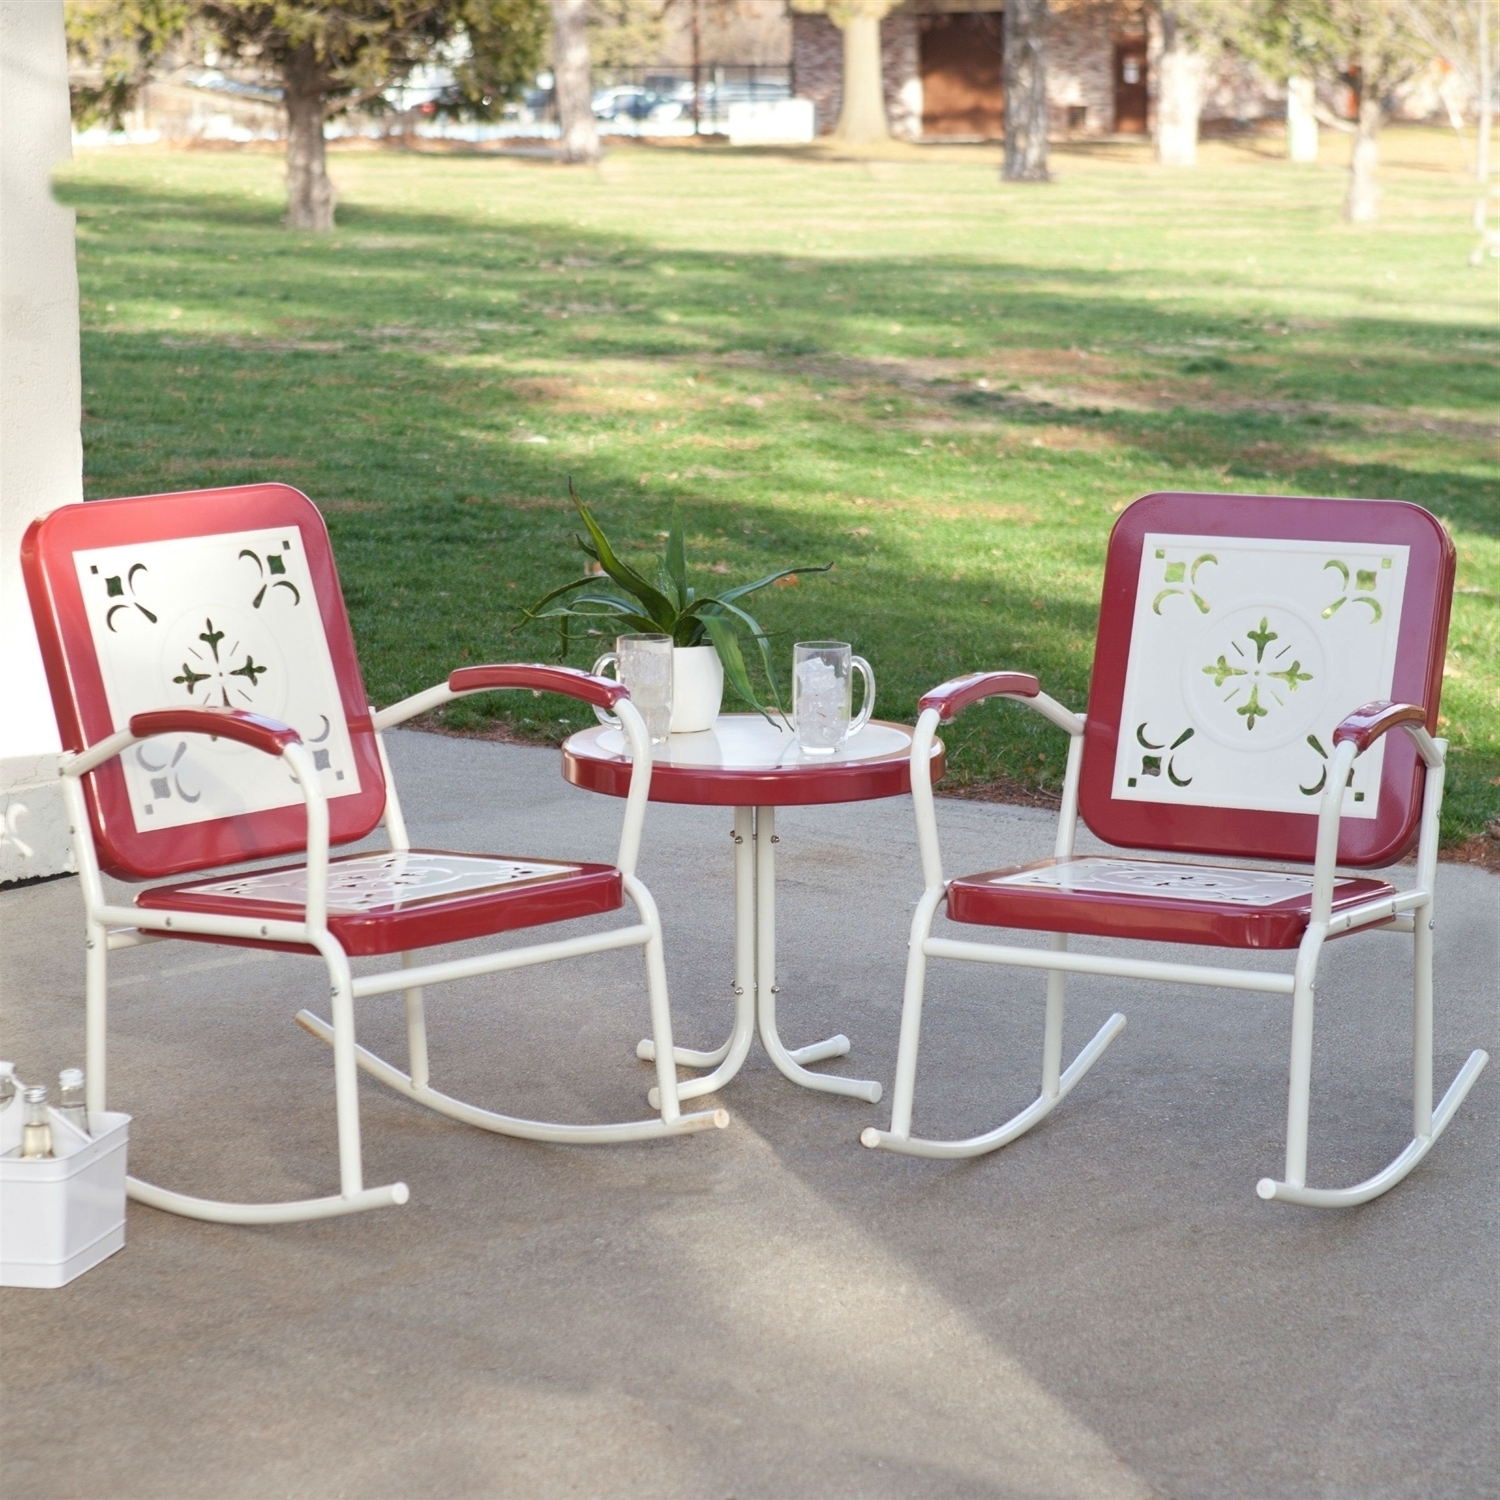 Cherry Red Retro Patio 3 Pc Metal Rocker Rocking Chair Set Within 3 For 2019 Retro Outdoor Rocking Chairs (View 4 of 20)